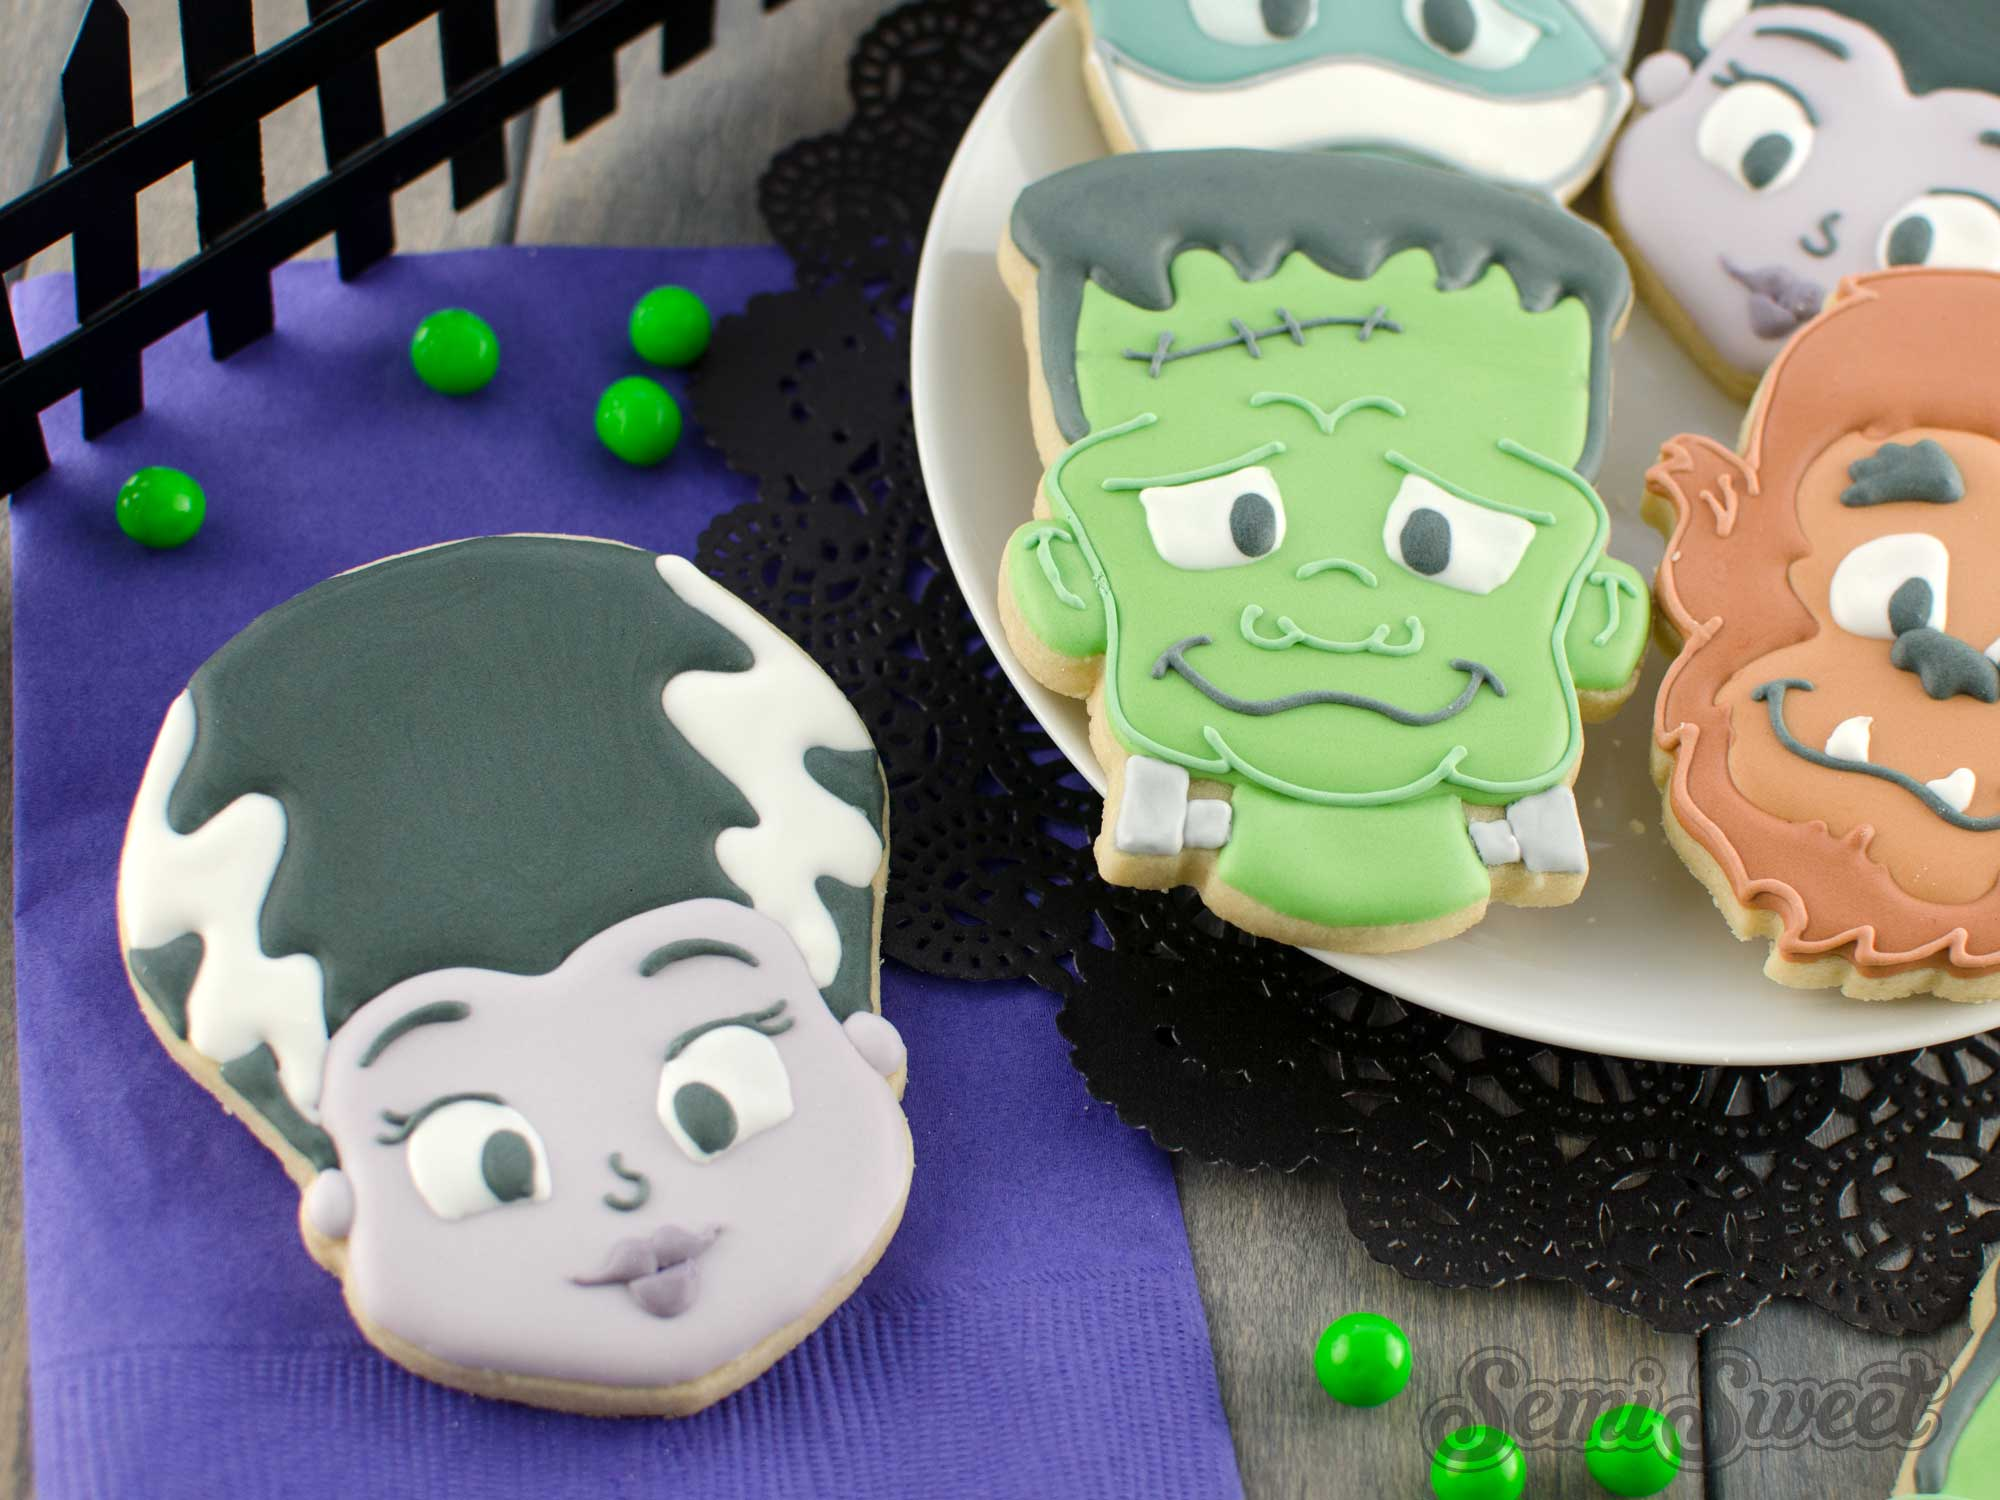 How to Make Bride of Frankenstein Cookies